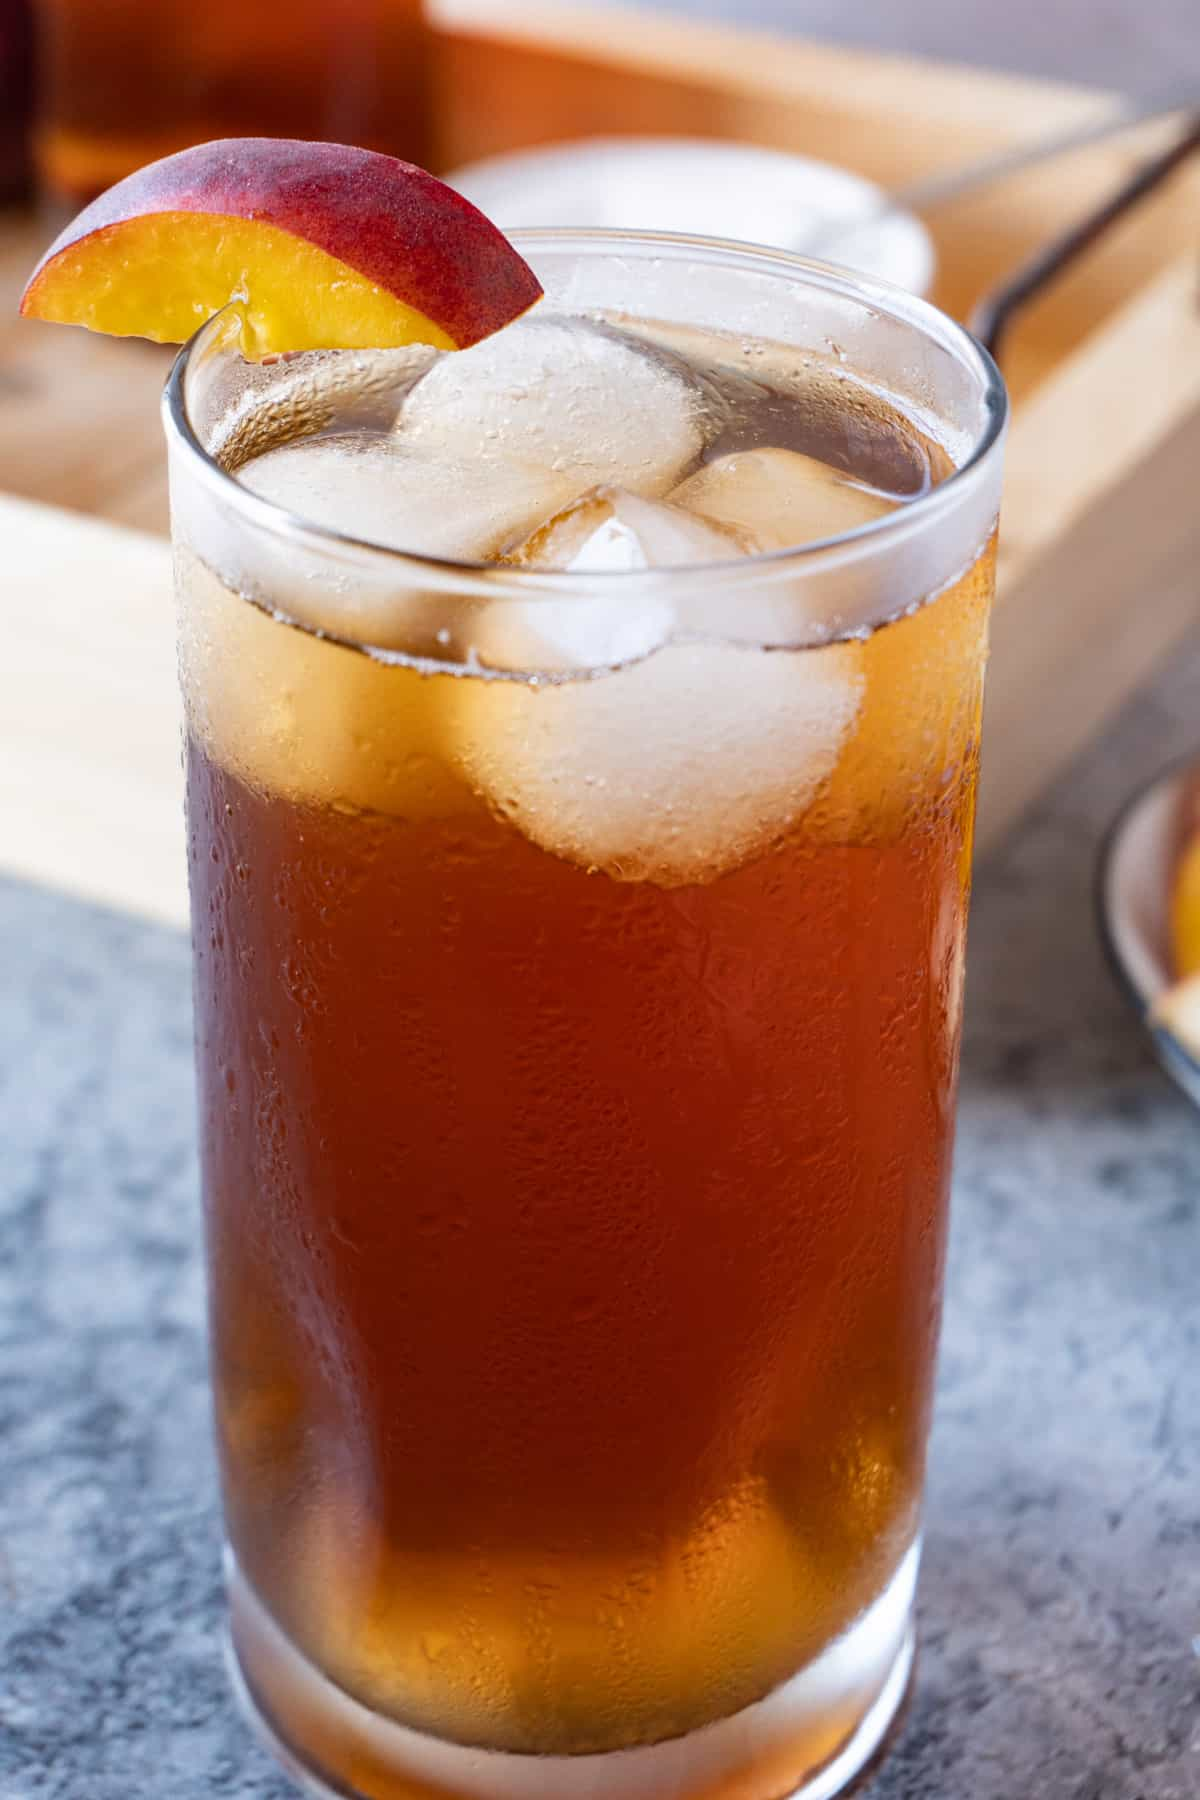 peach iced tea in glass with ice cubes